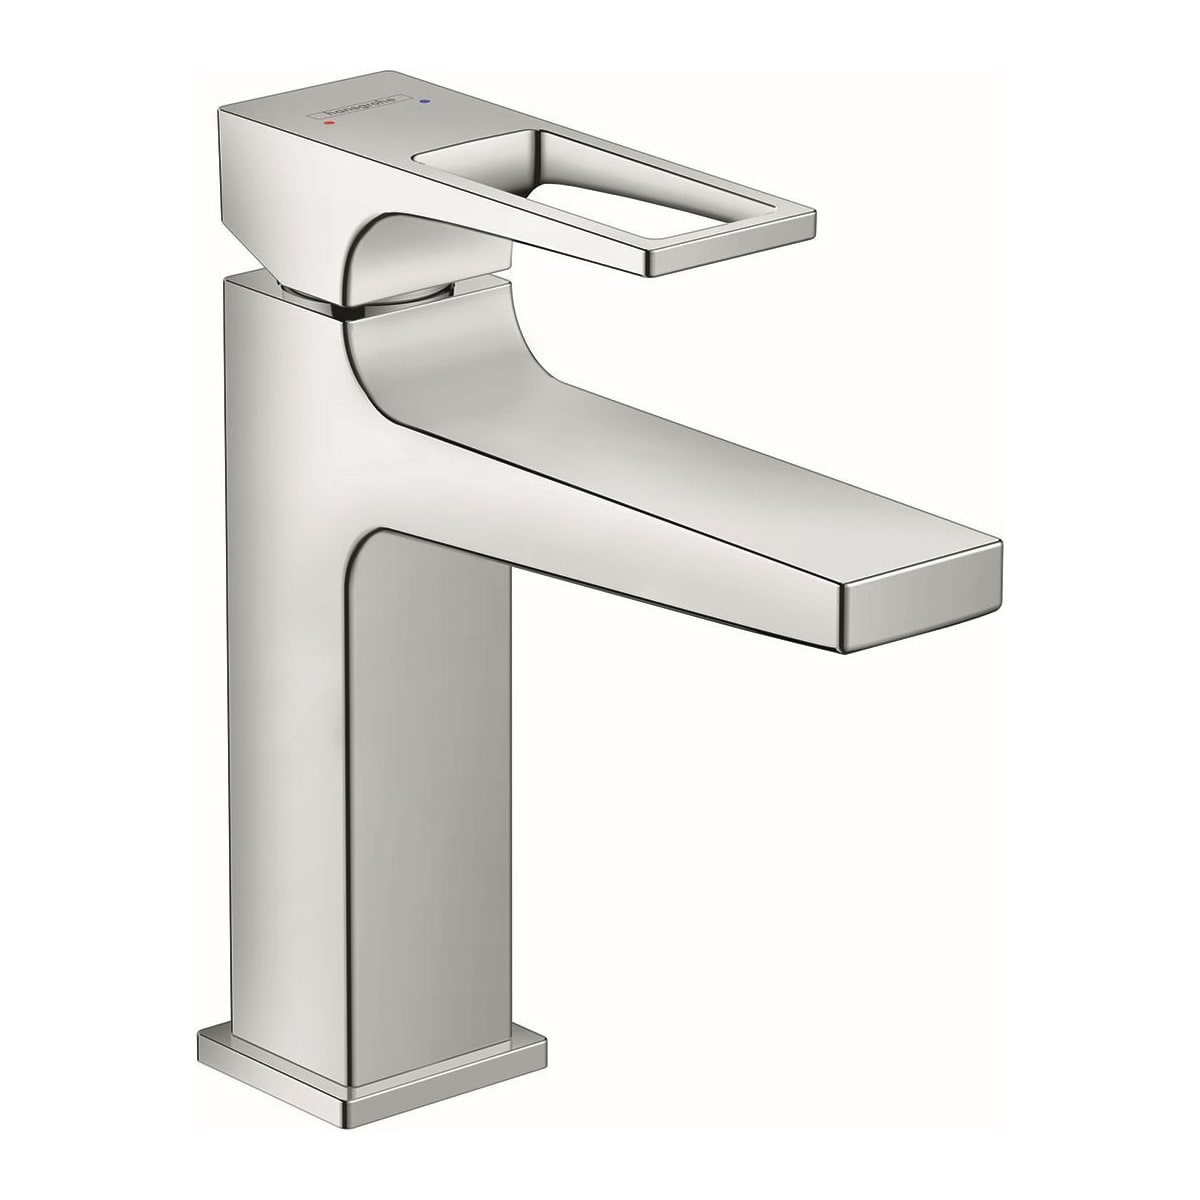 Hansgrohe 74506001 Chrome Metropol 1 2 Gpm Single Hole Bathroom Faucet With Loop Handle And Pop Up Drain Limited Lifetime Warranty Faucet Com